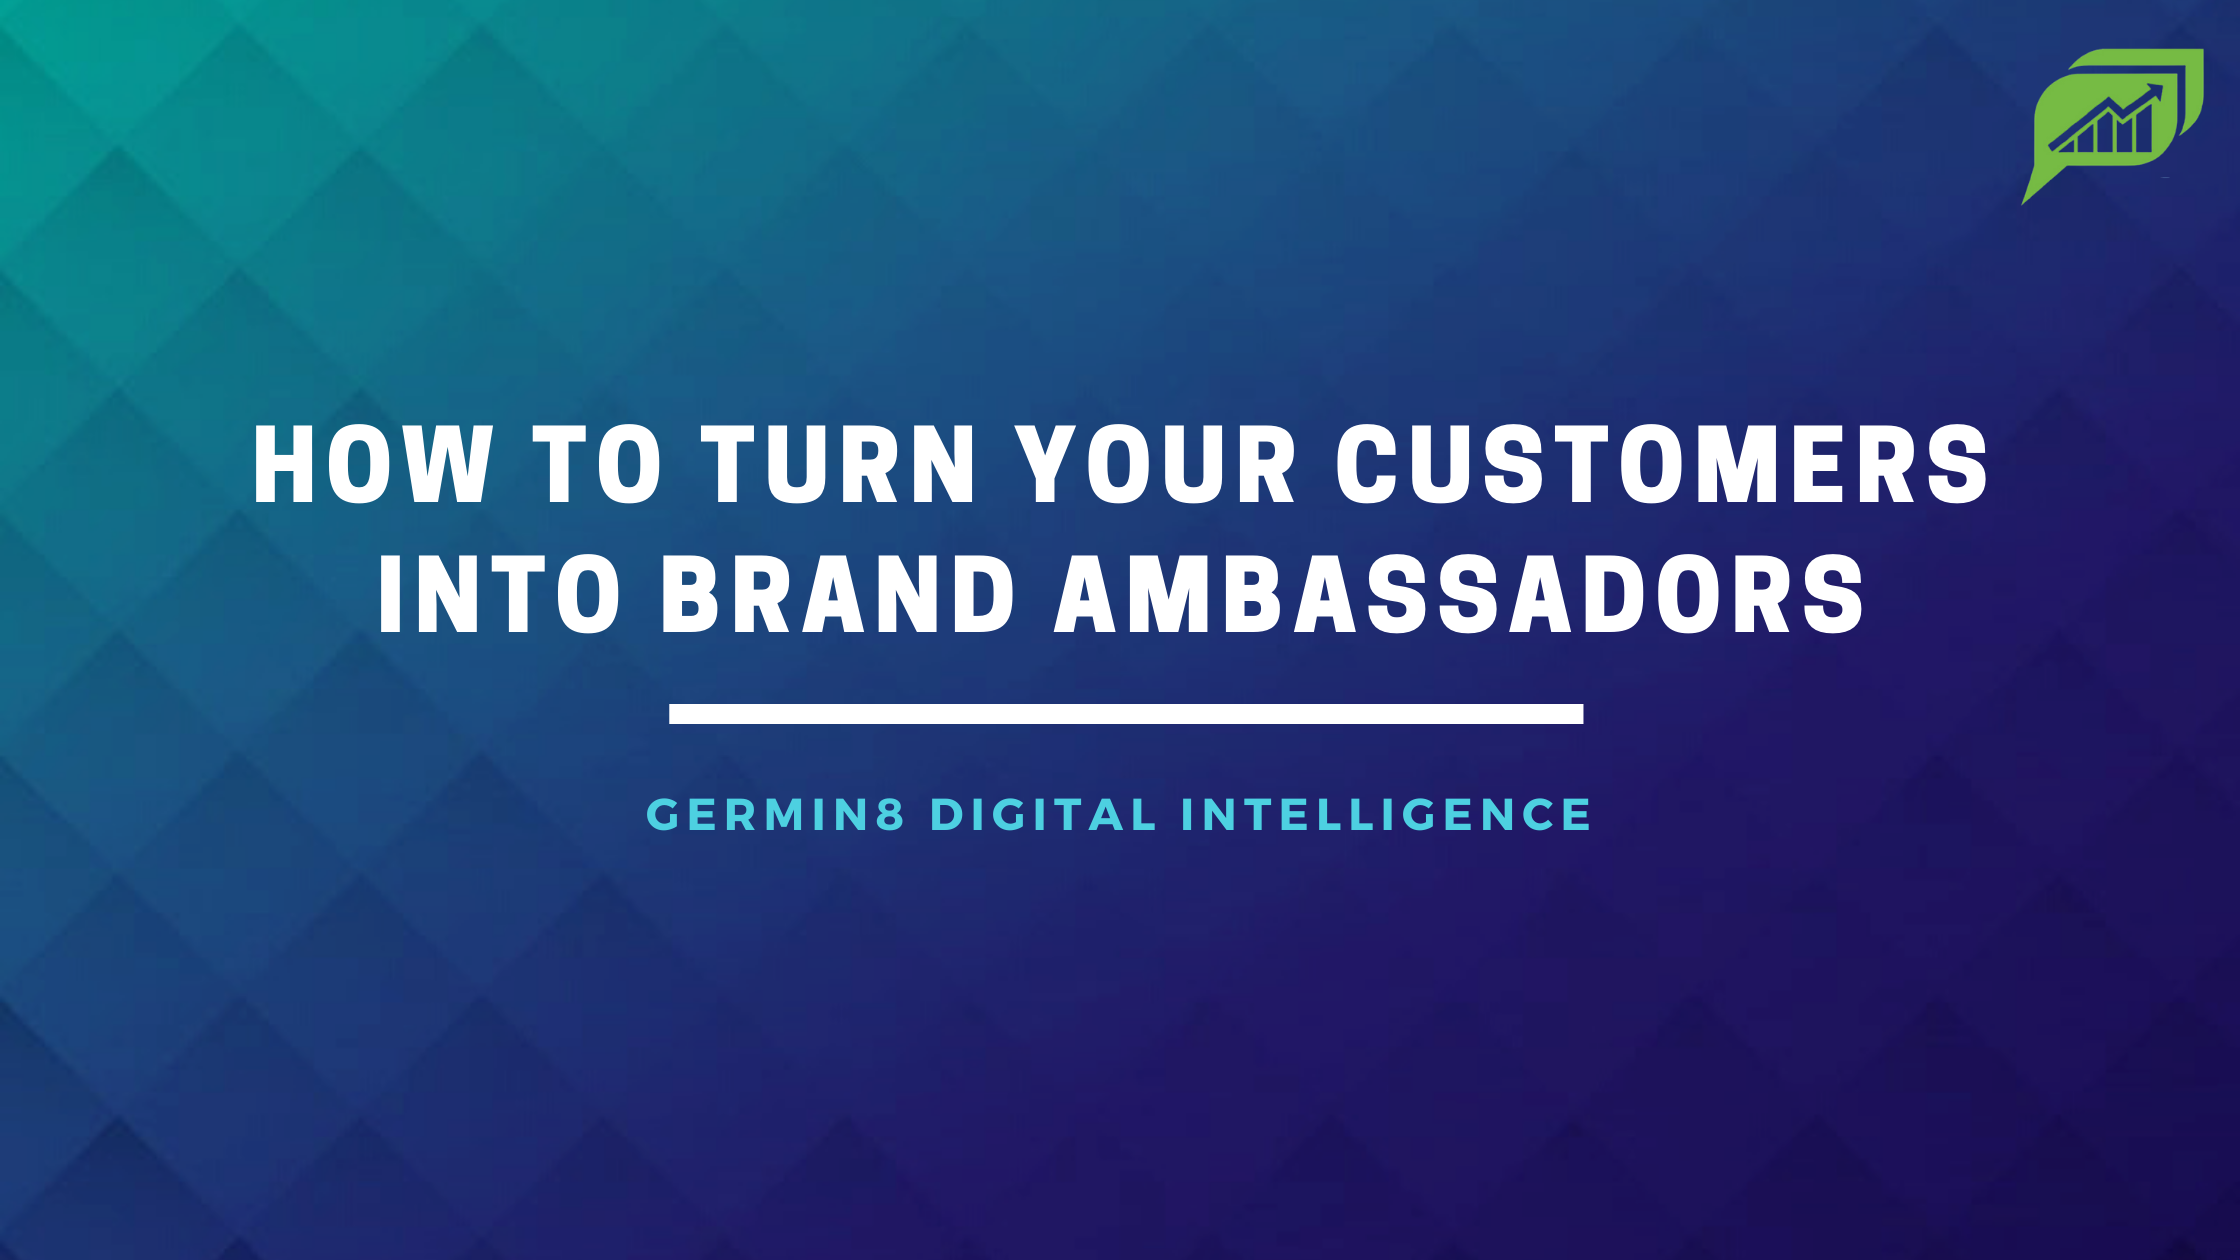 How-To-Turn-Your-Customers-Into-Brand-Ambassadors